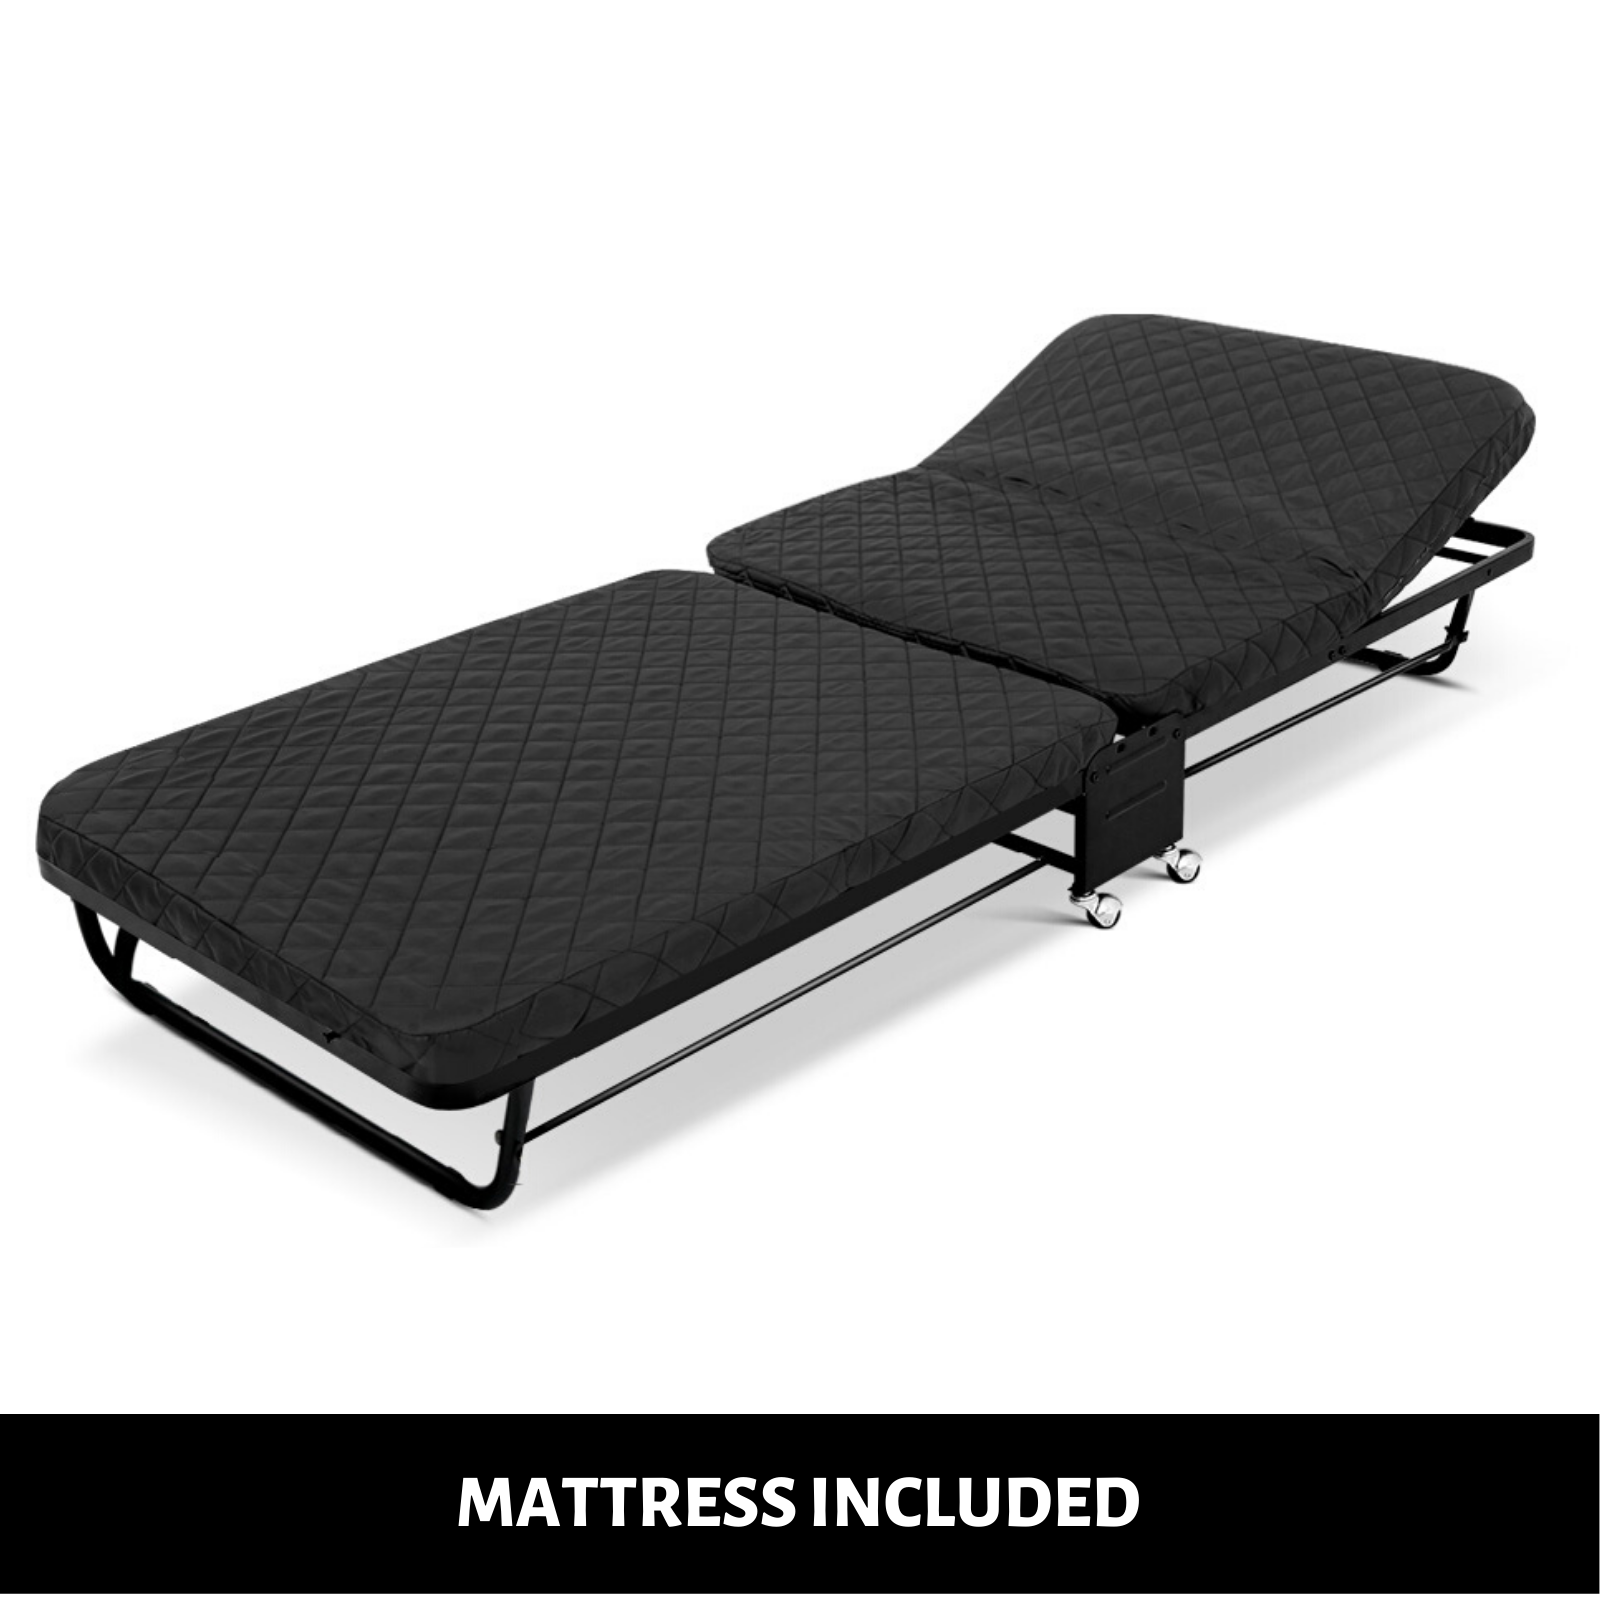 Portable Folding Bed with Mattress Wheels Camping Guest ...